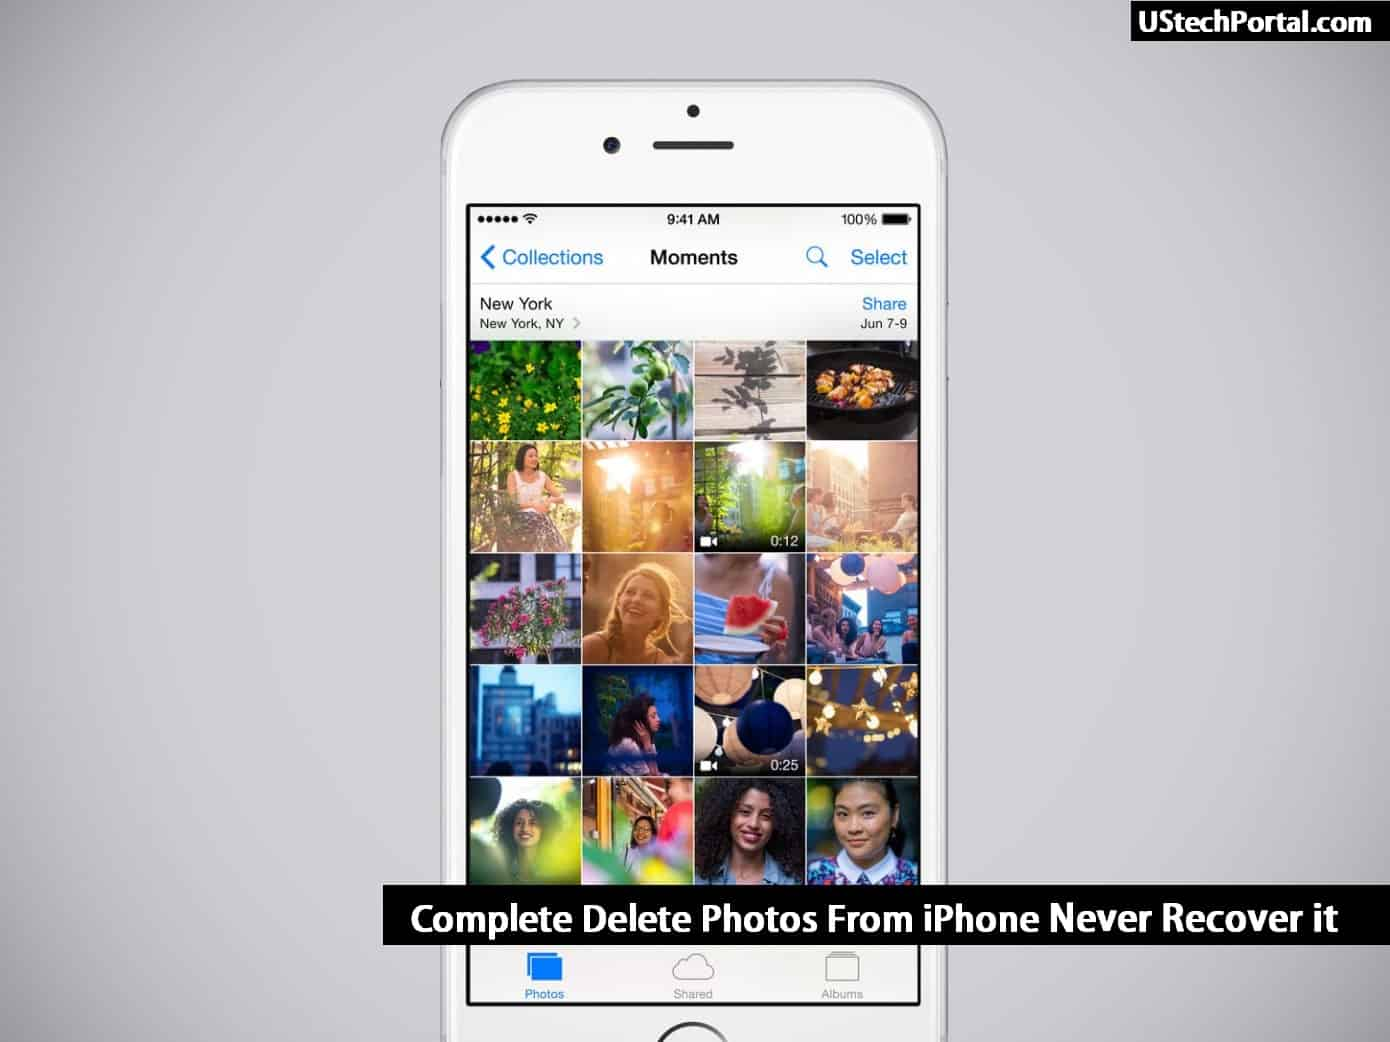 3 Ways To Complete Delete Photos From iPhone